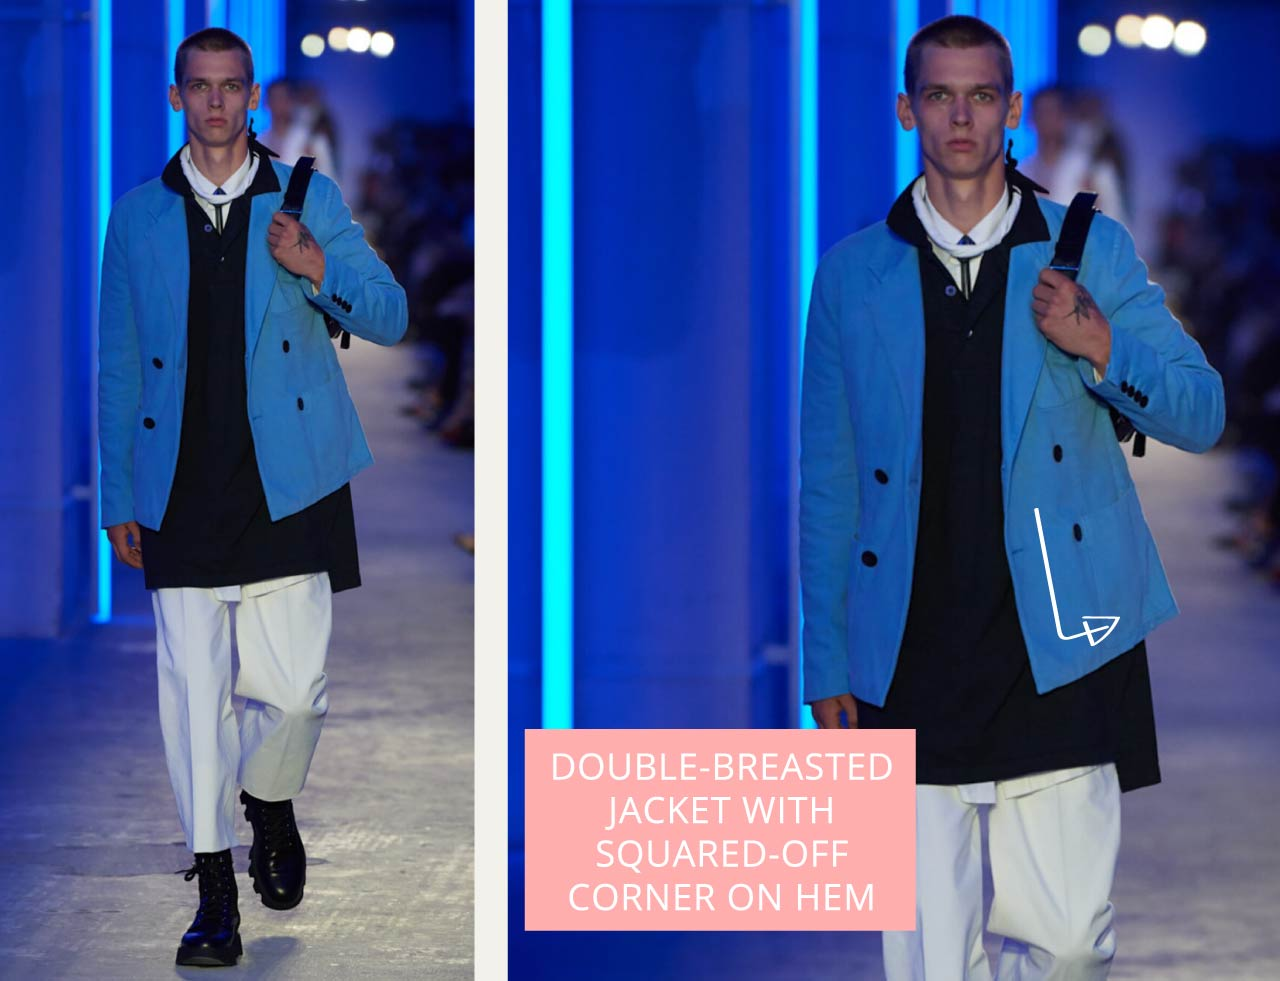 Tailored Jacket Hems - Straight or Curved? | The Cutting Class. Prada, Menswear SS20. Double-breasted suit jacket in bright blue.